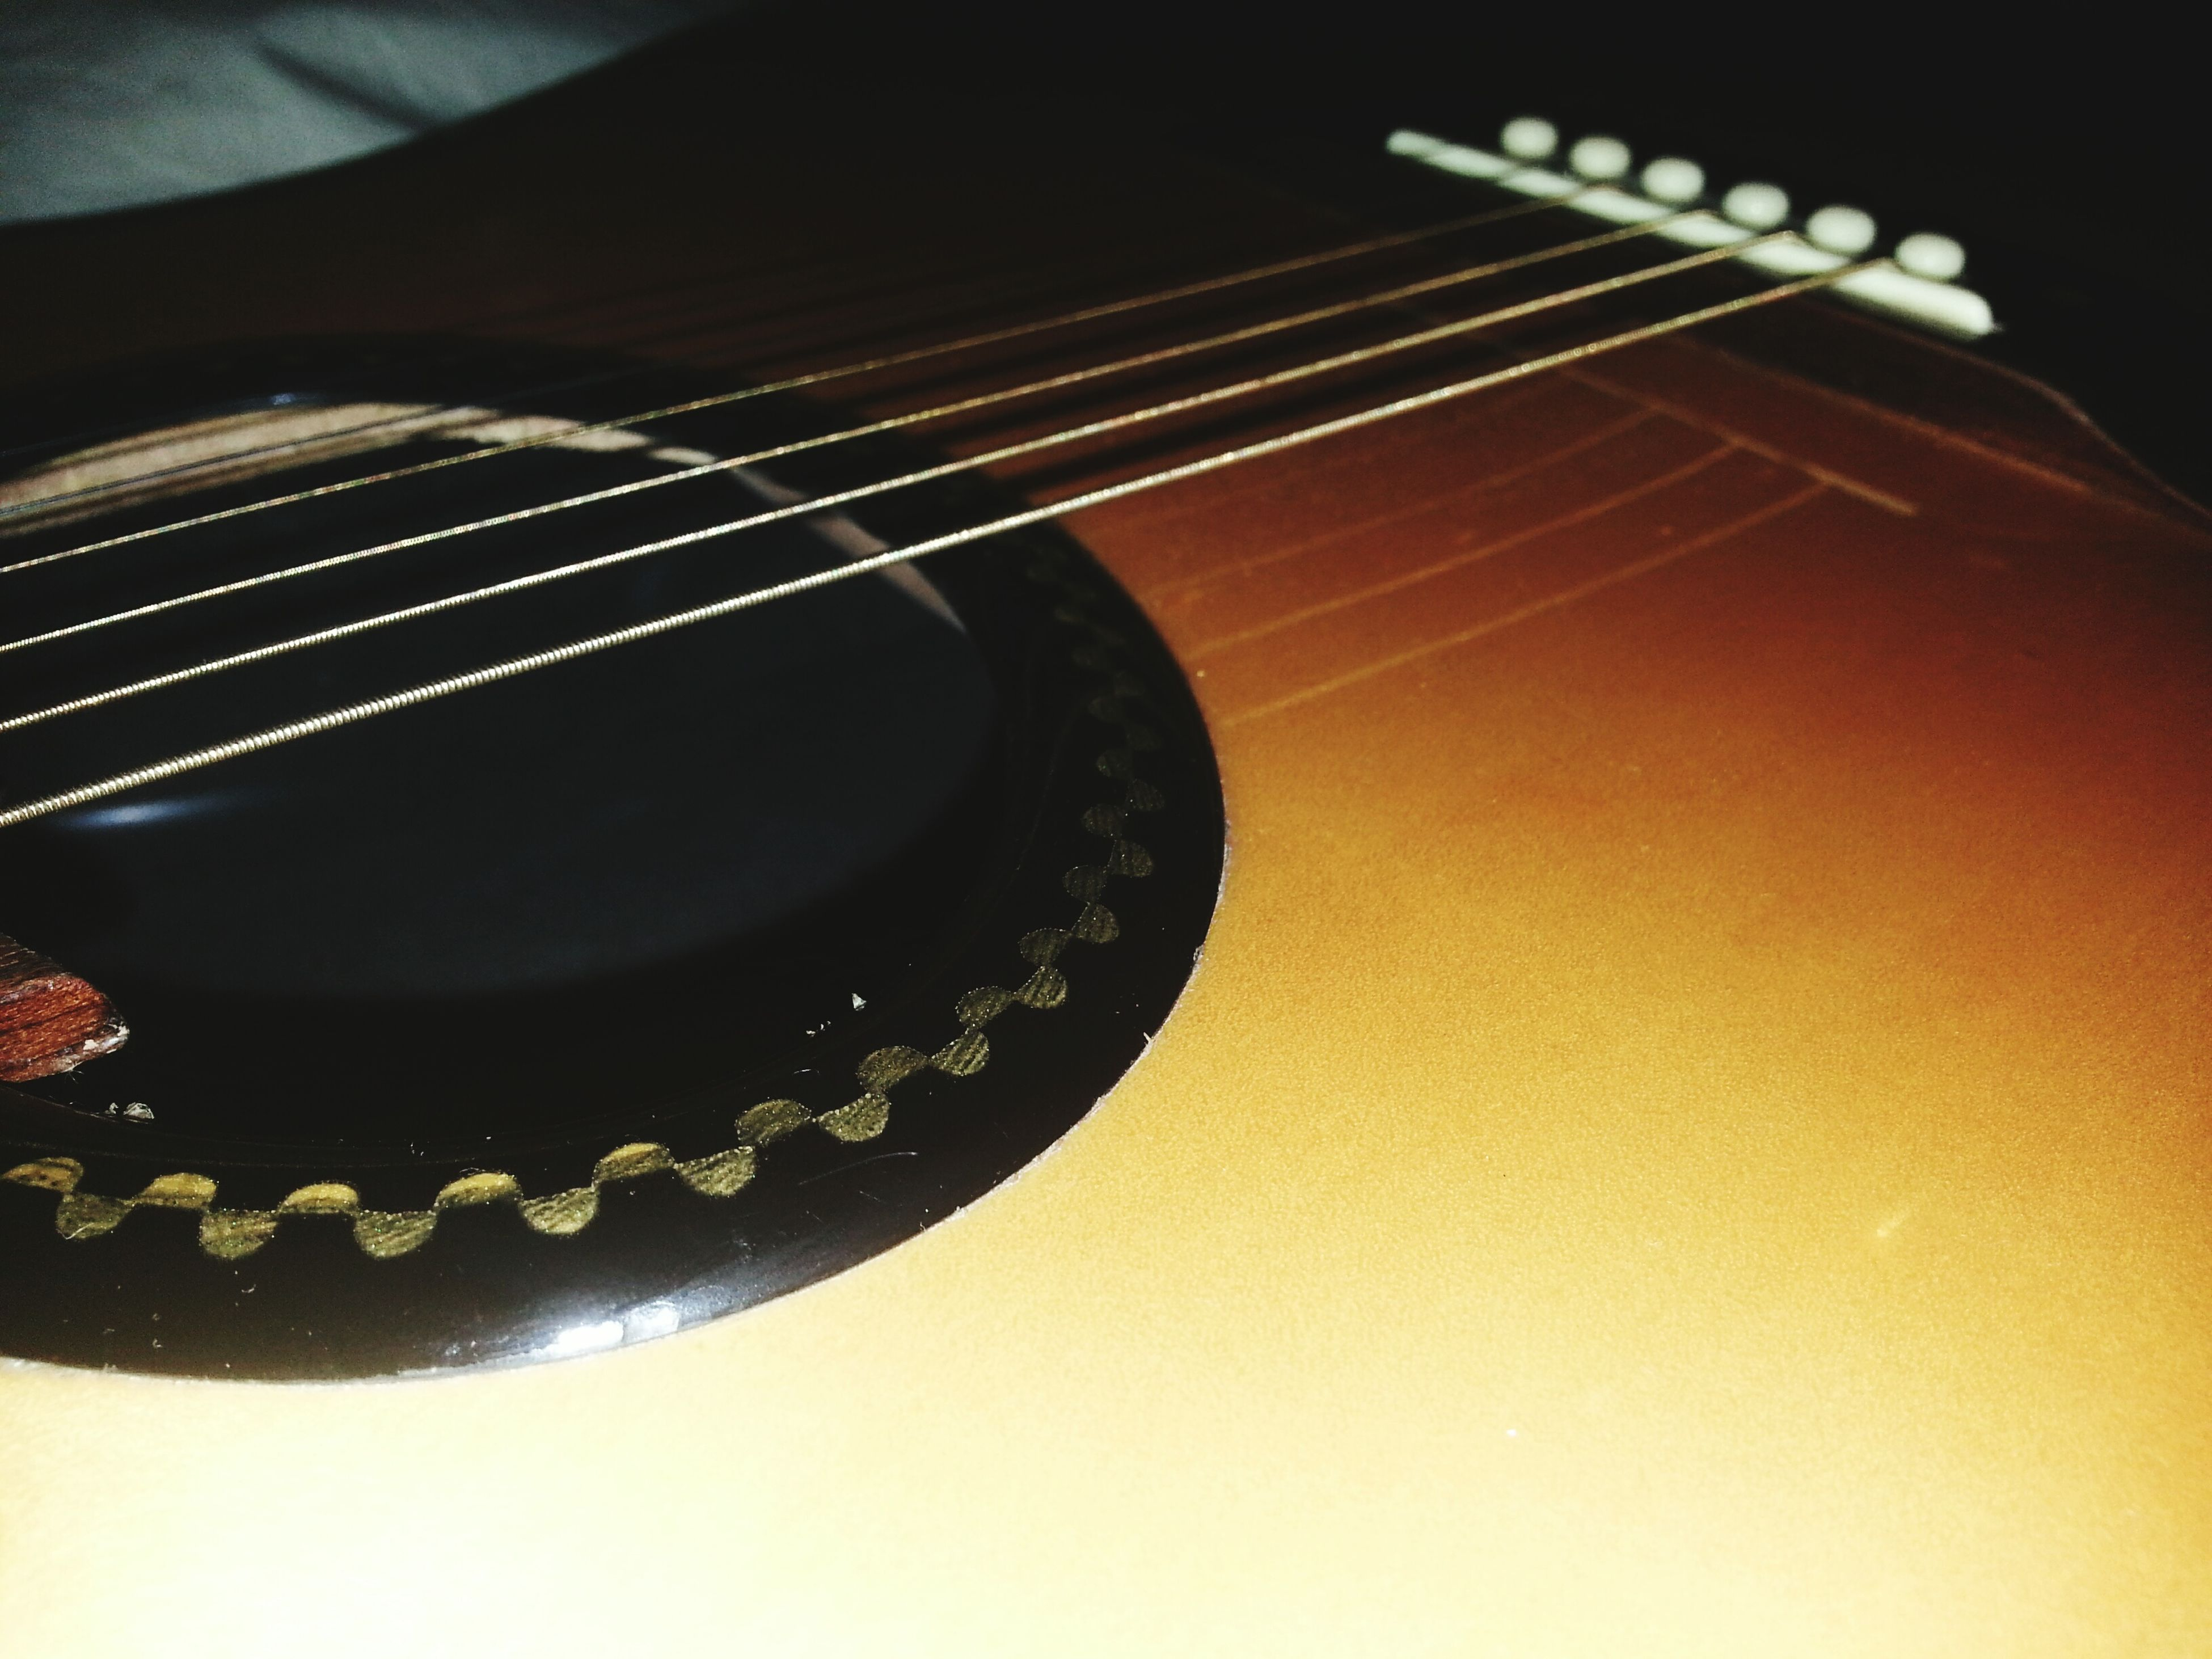 indoors, still life, close-up, music, high angle view, musical instrument, single object, table, musical instrument string, arts culture and entertainment, musical equipment, studio shot, no people, guitar, technology, acoustic guitar, black color, string instrument, part of, selective focus